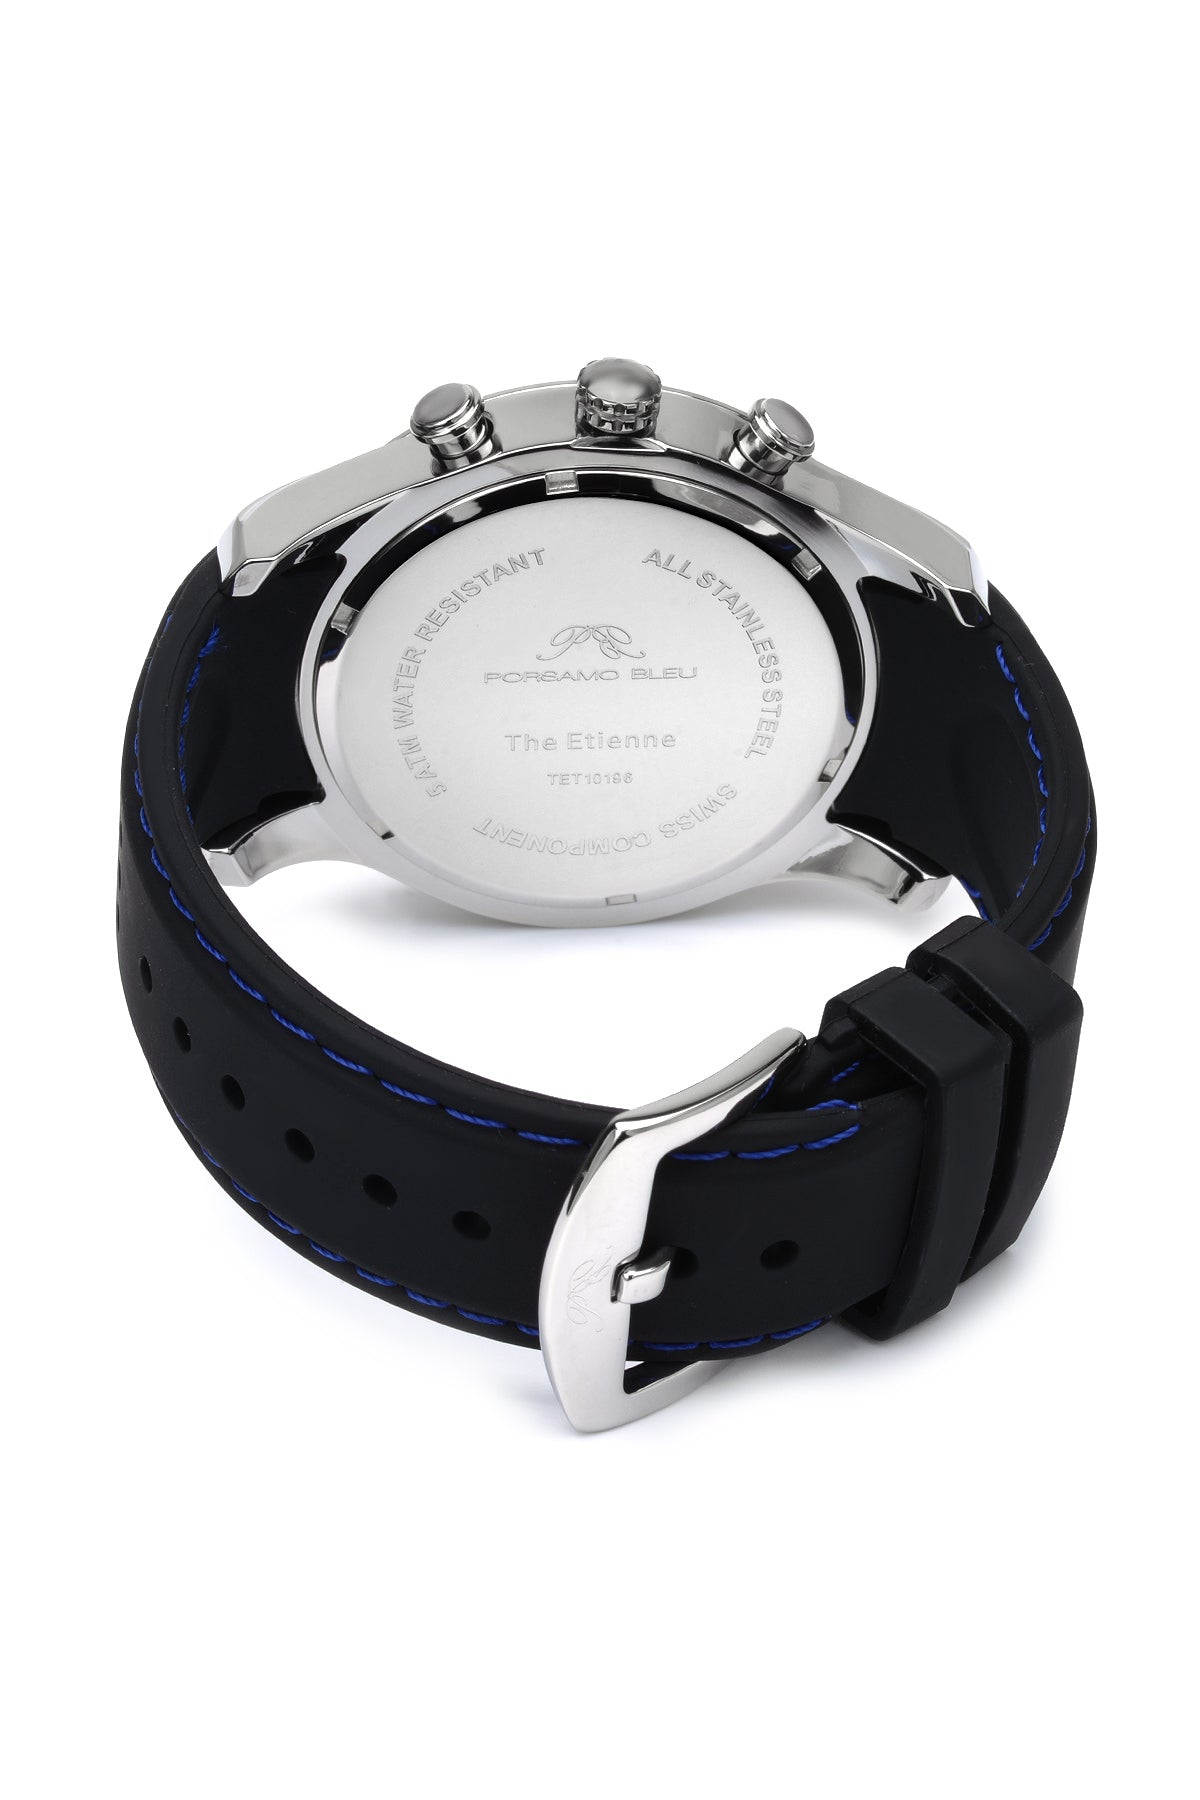 Porsamo Bleu Etienne luxury men's watch, silicone strap, silver, black 212CETR